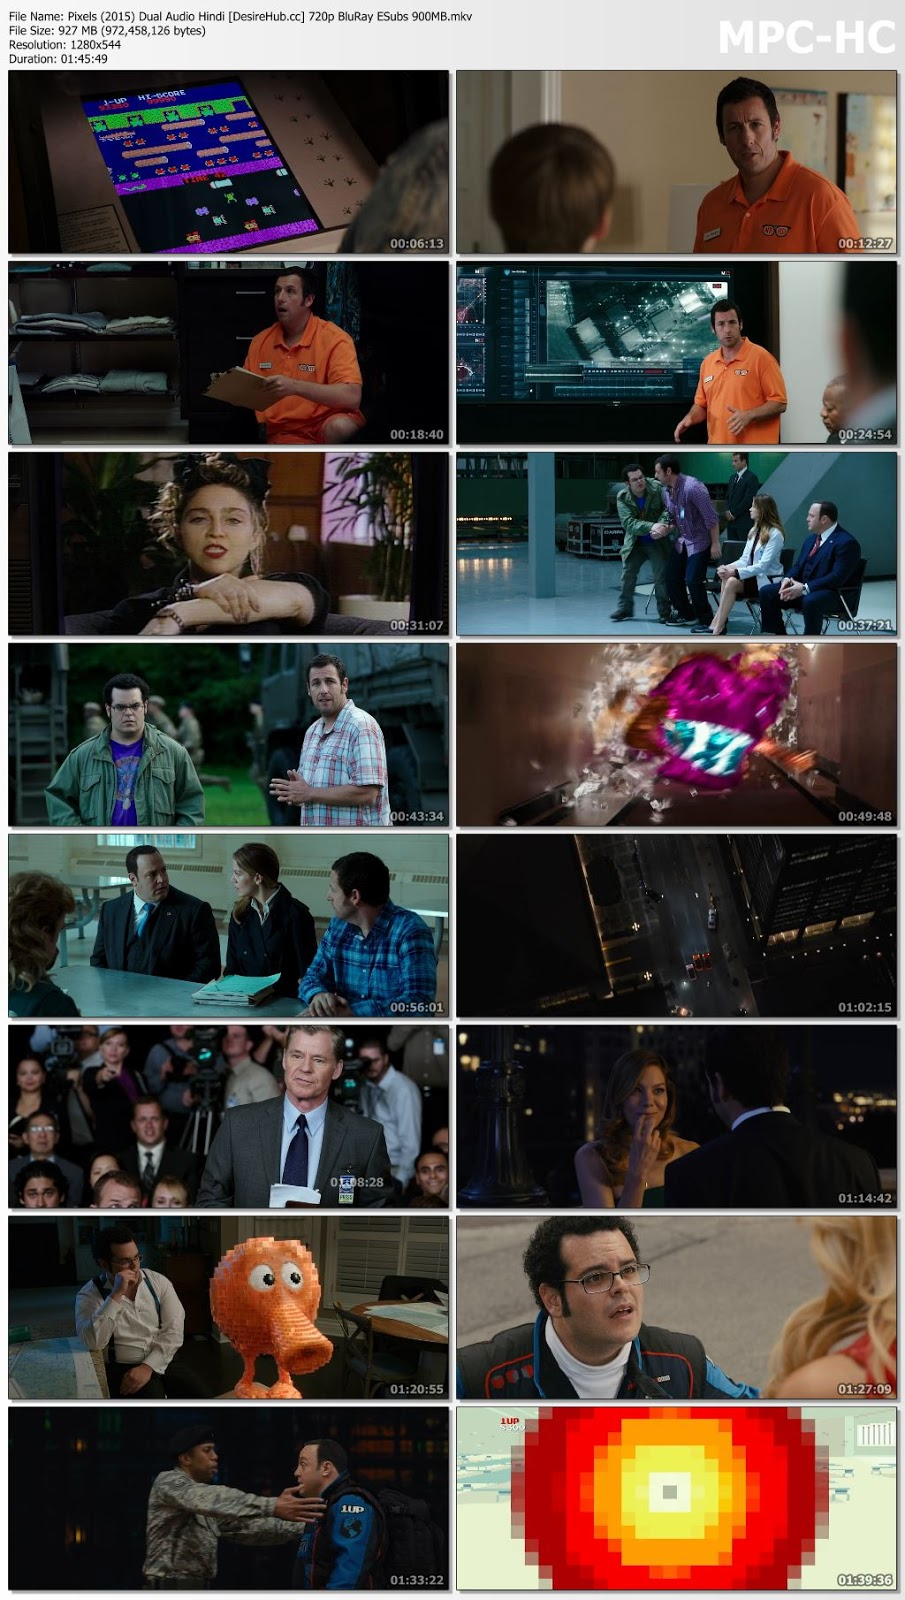 Pixels (2015) Dual Audio ORG Hindi 720p BluRay ESubs 900MB Desirehub